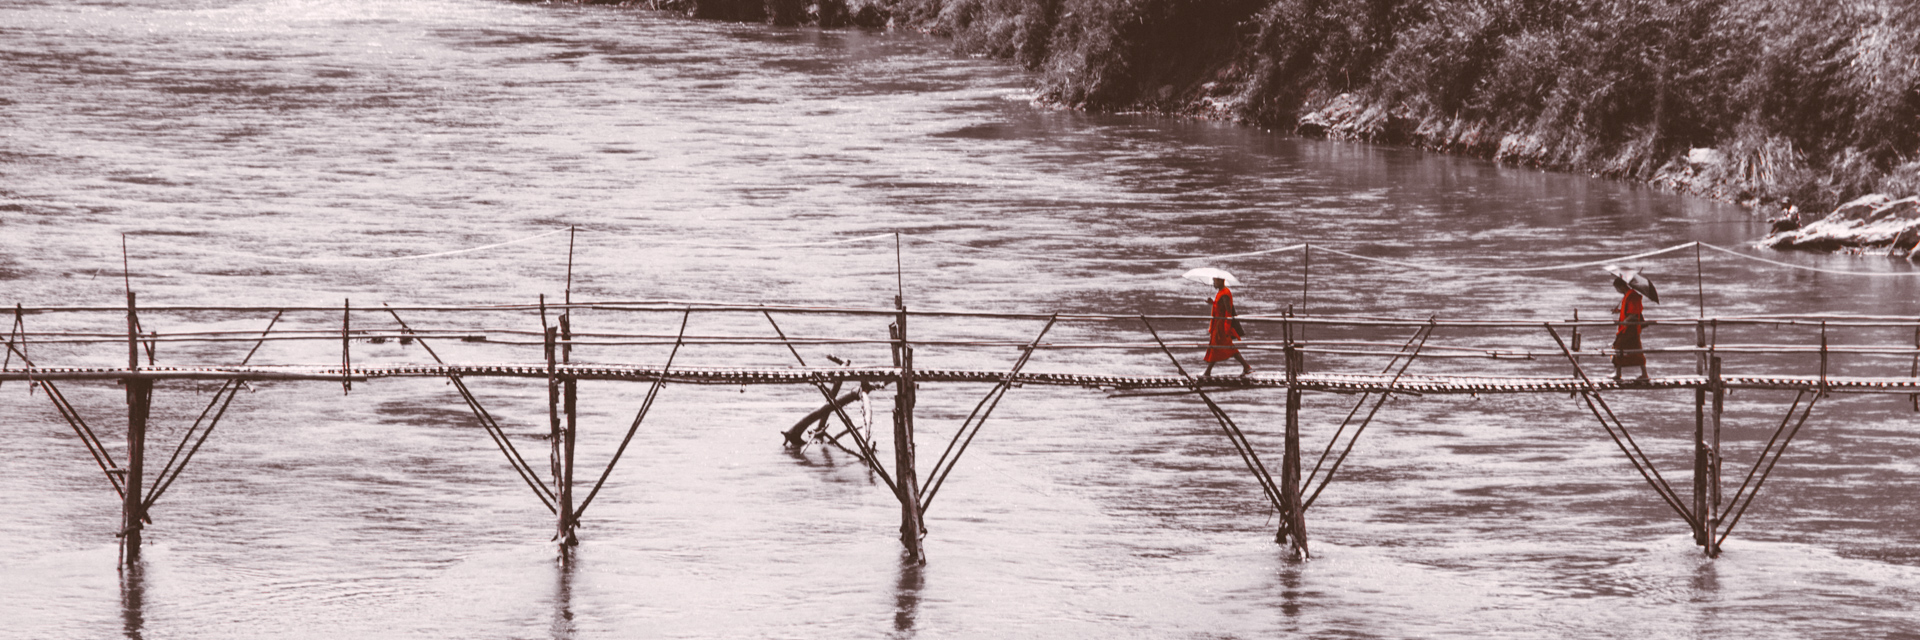 Monks Walk across bridge in Luang Prabang